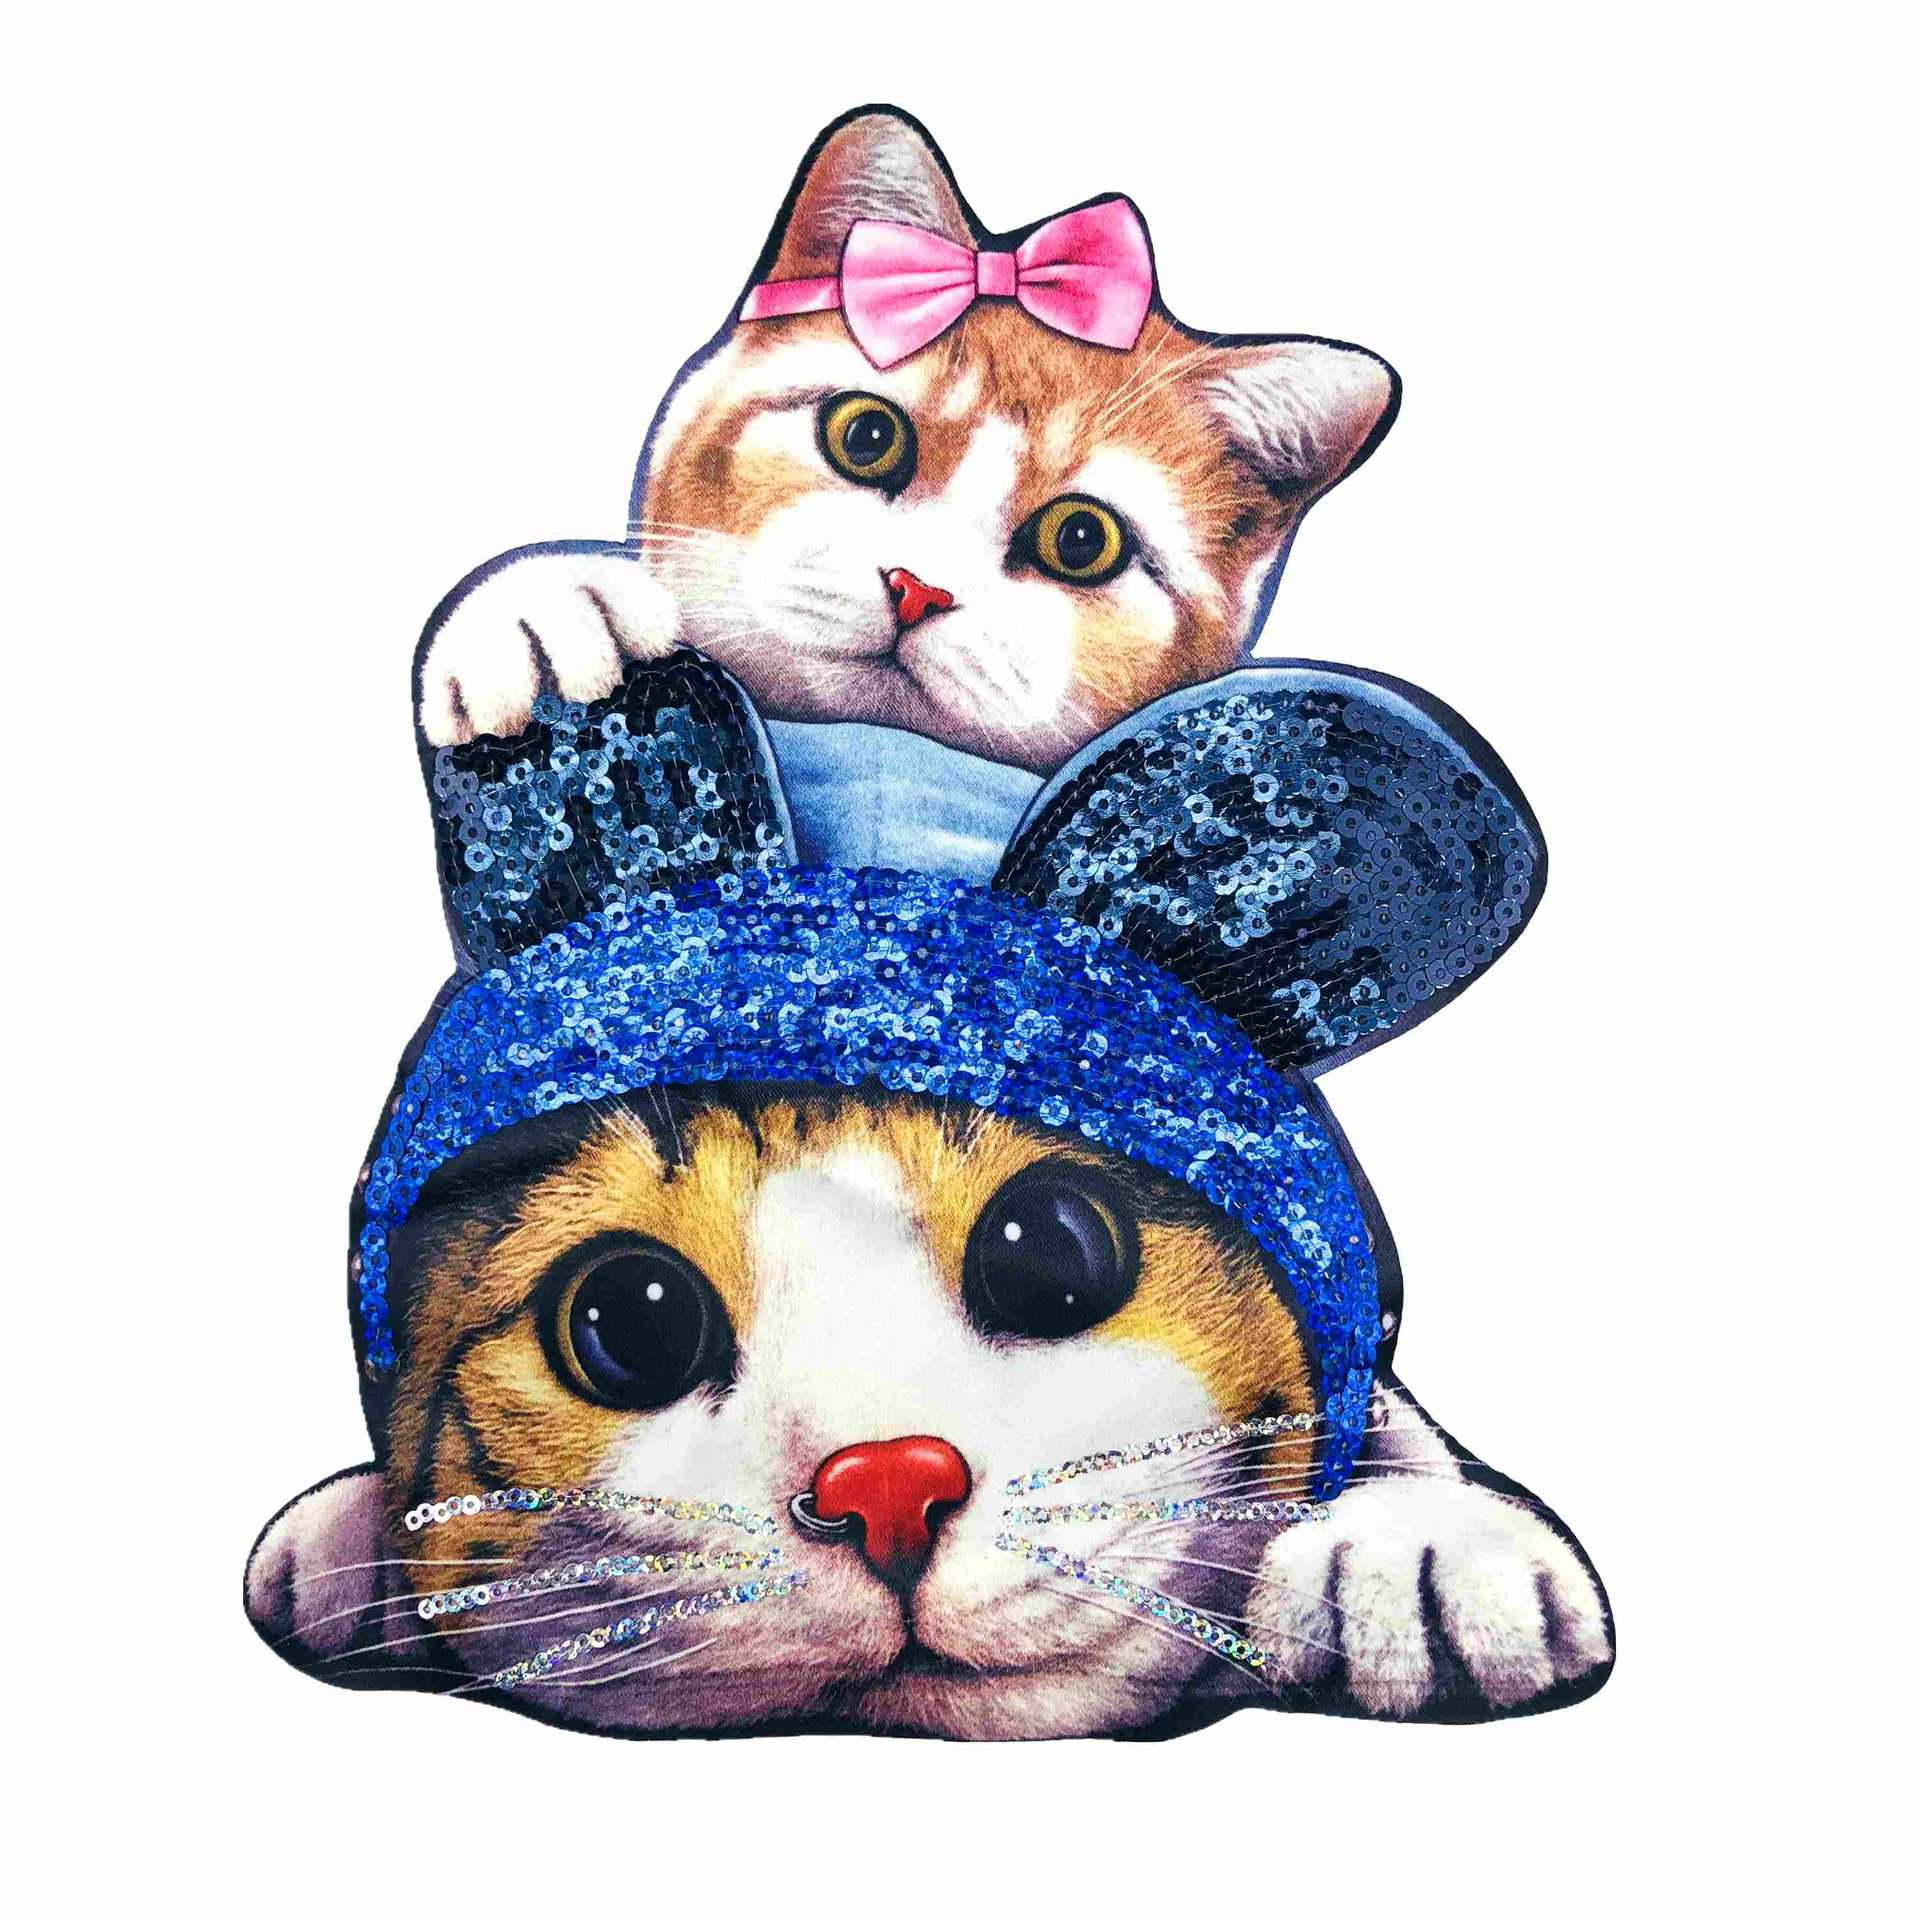 Cute Patches Small Animal Clothing Hot Painting Diy Girl DIY Handmade T-shirt And Denim Jacket Printing